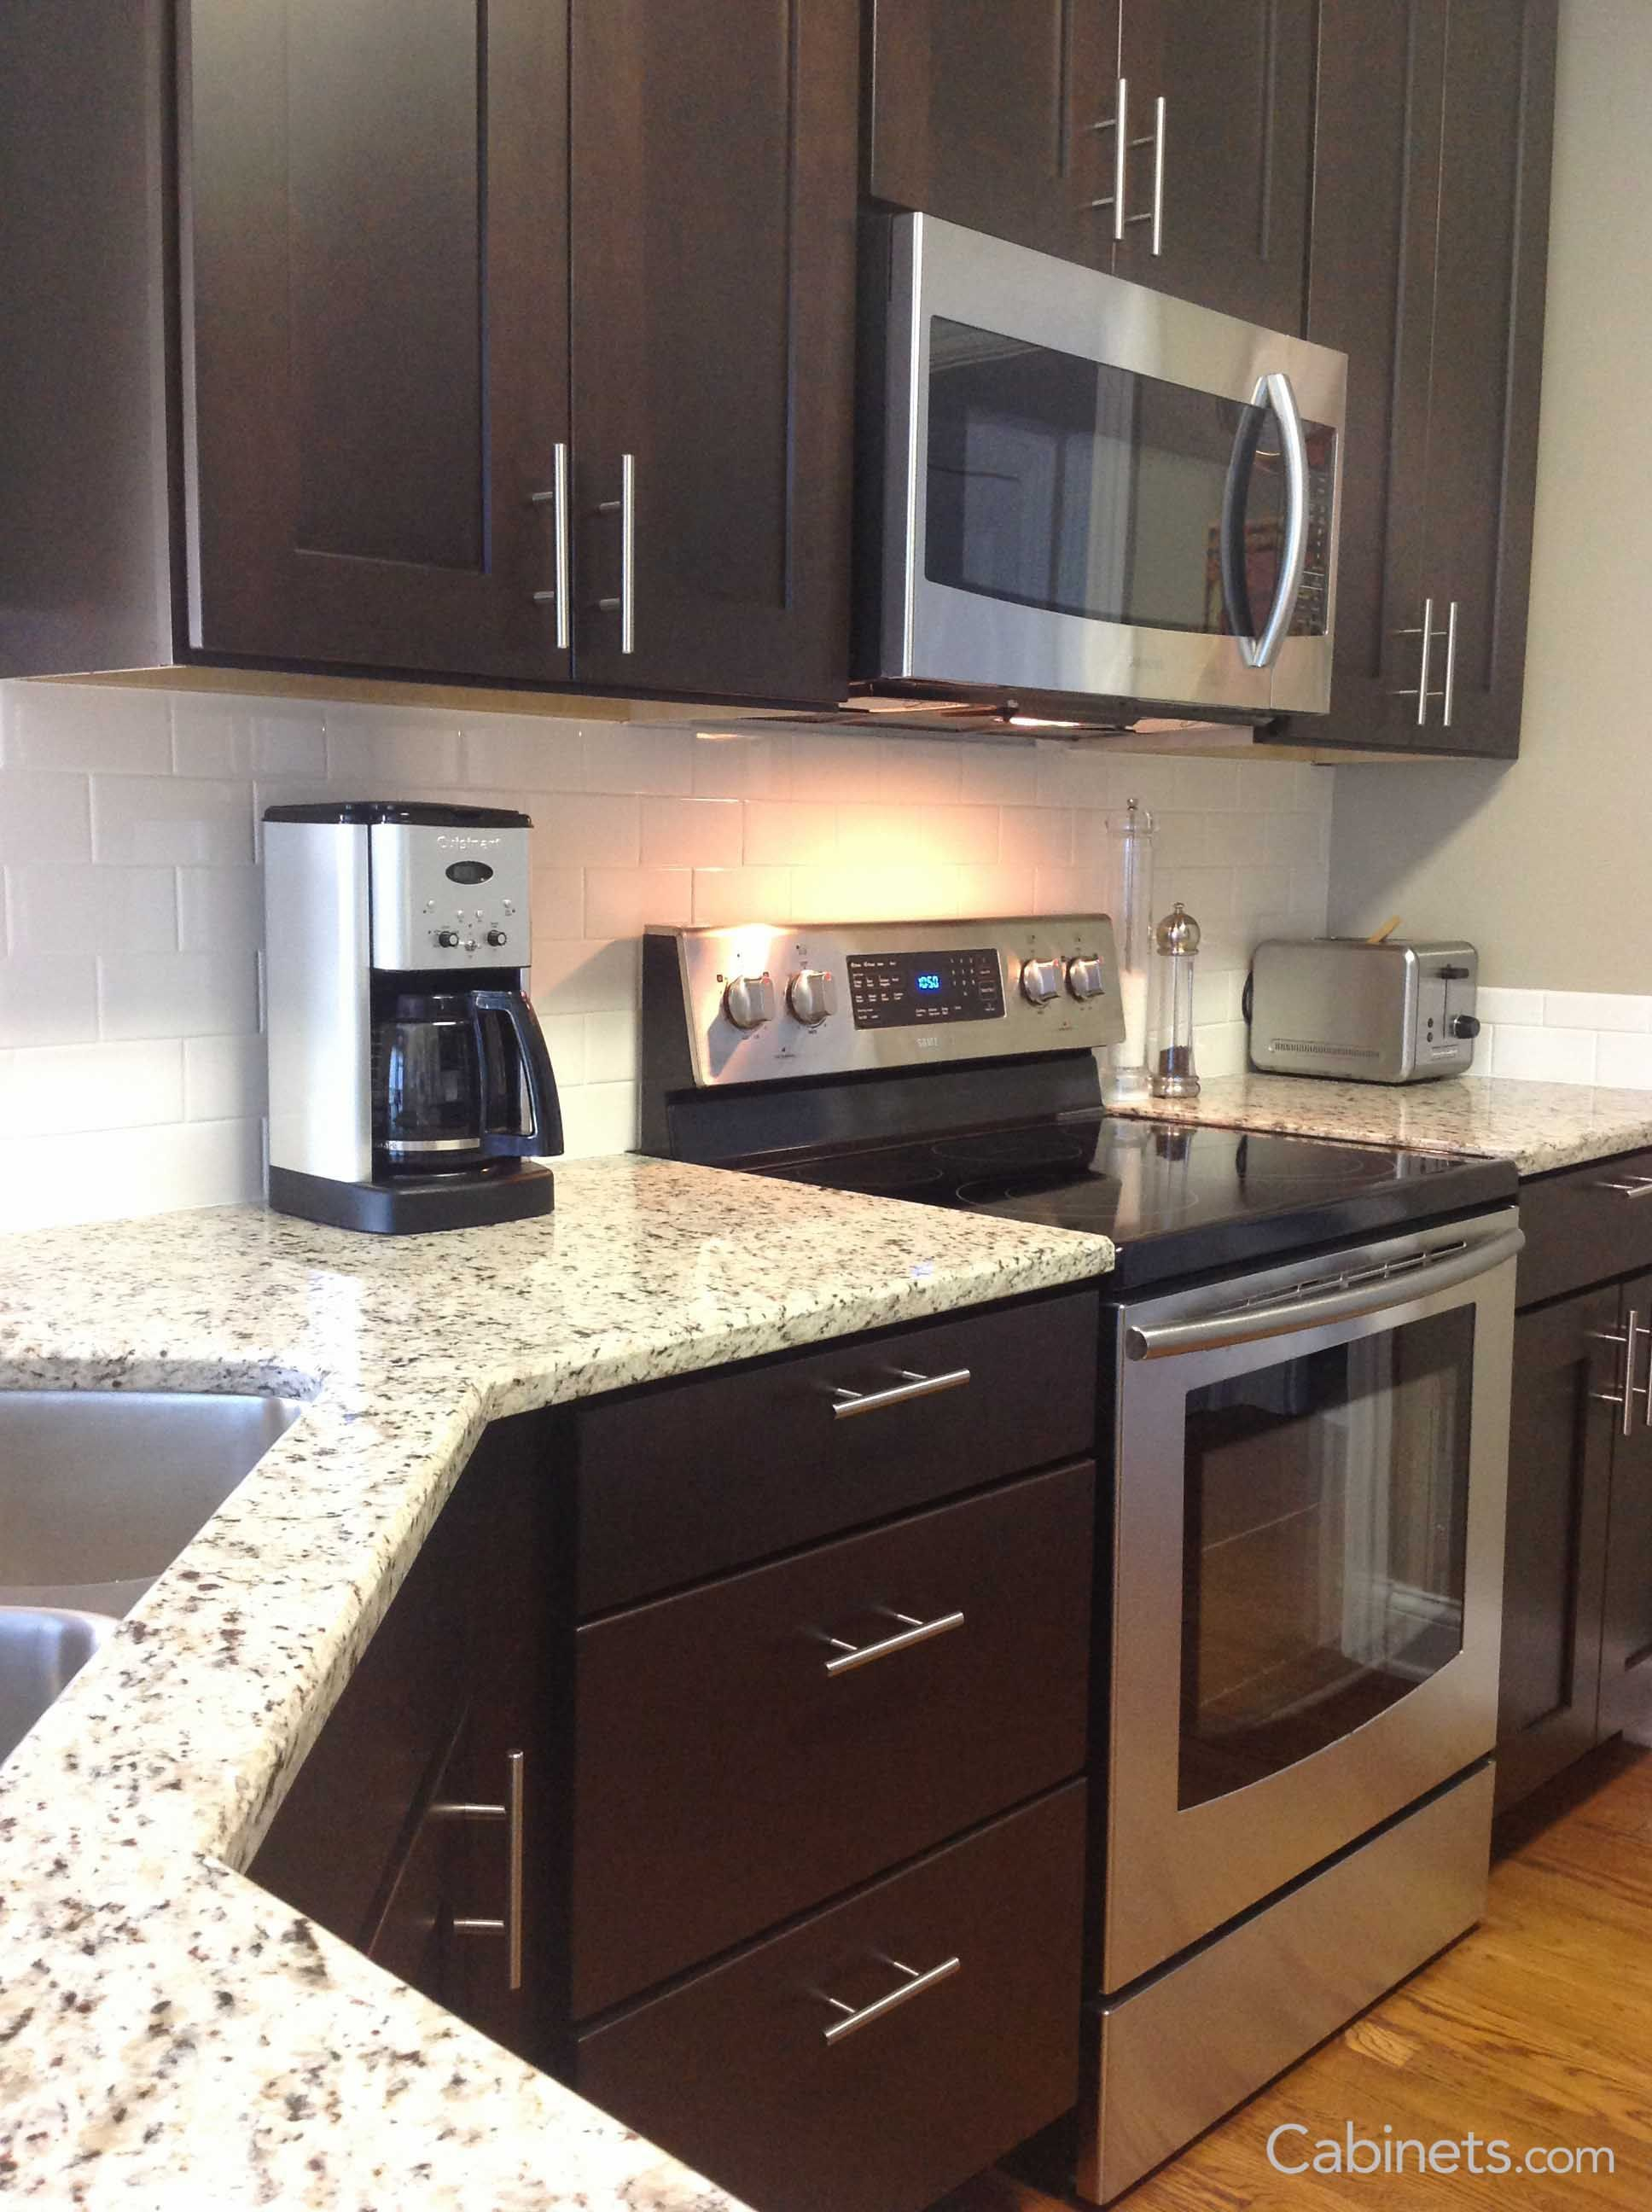 Shaker Kitchen Cabinets Is A Timeless Choice For Your Kitchen The Picture Features Brown Kitchen Cabinets Shaker Style Kitchen Cabinets Kitchen Cabinet Styles